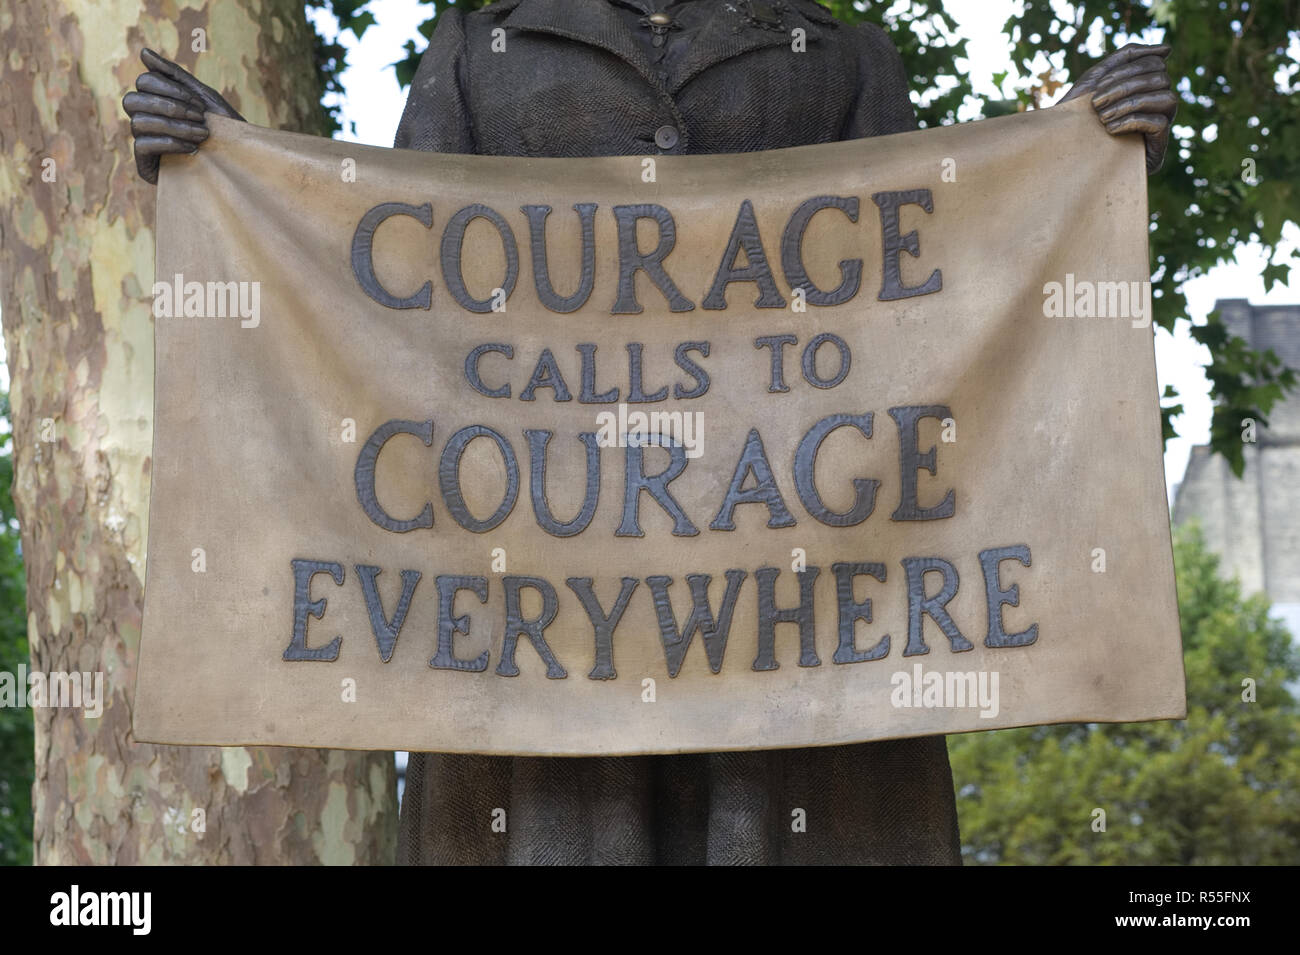 Courage calls to courage everywhere Plaque. Millicent Fawcett in Parliament Square - Stock Image